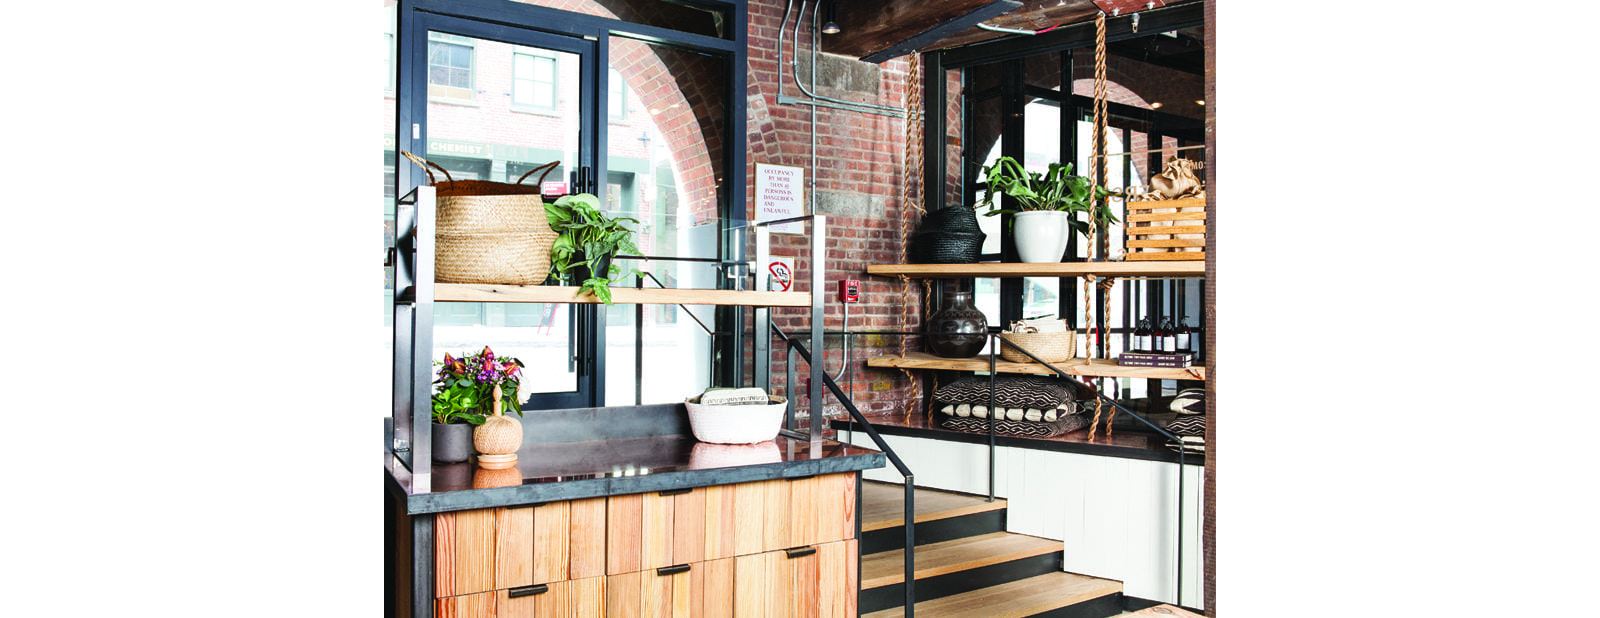 feed empire stores brooklyn shelving